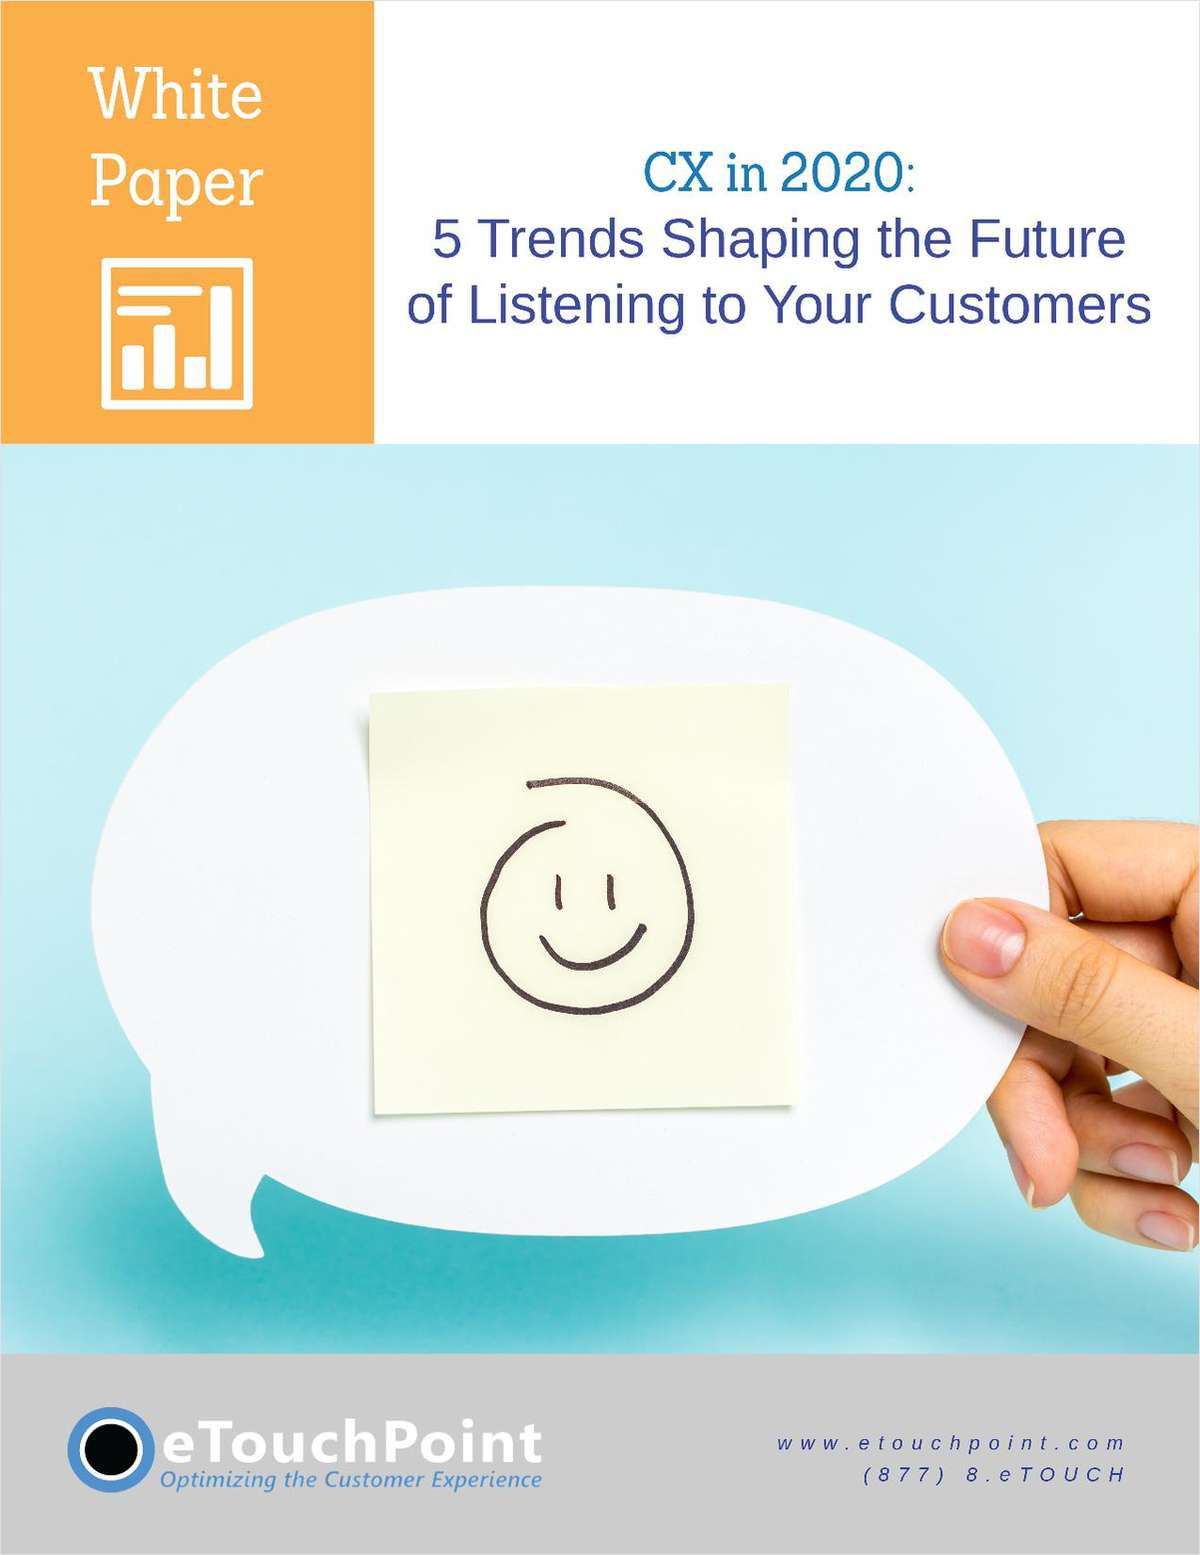 CX in 2020: 5 Trends Shaping the Future of Listening to Your Customers